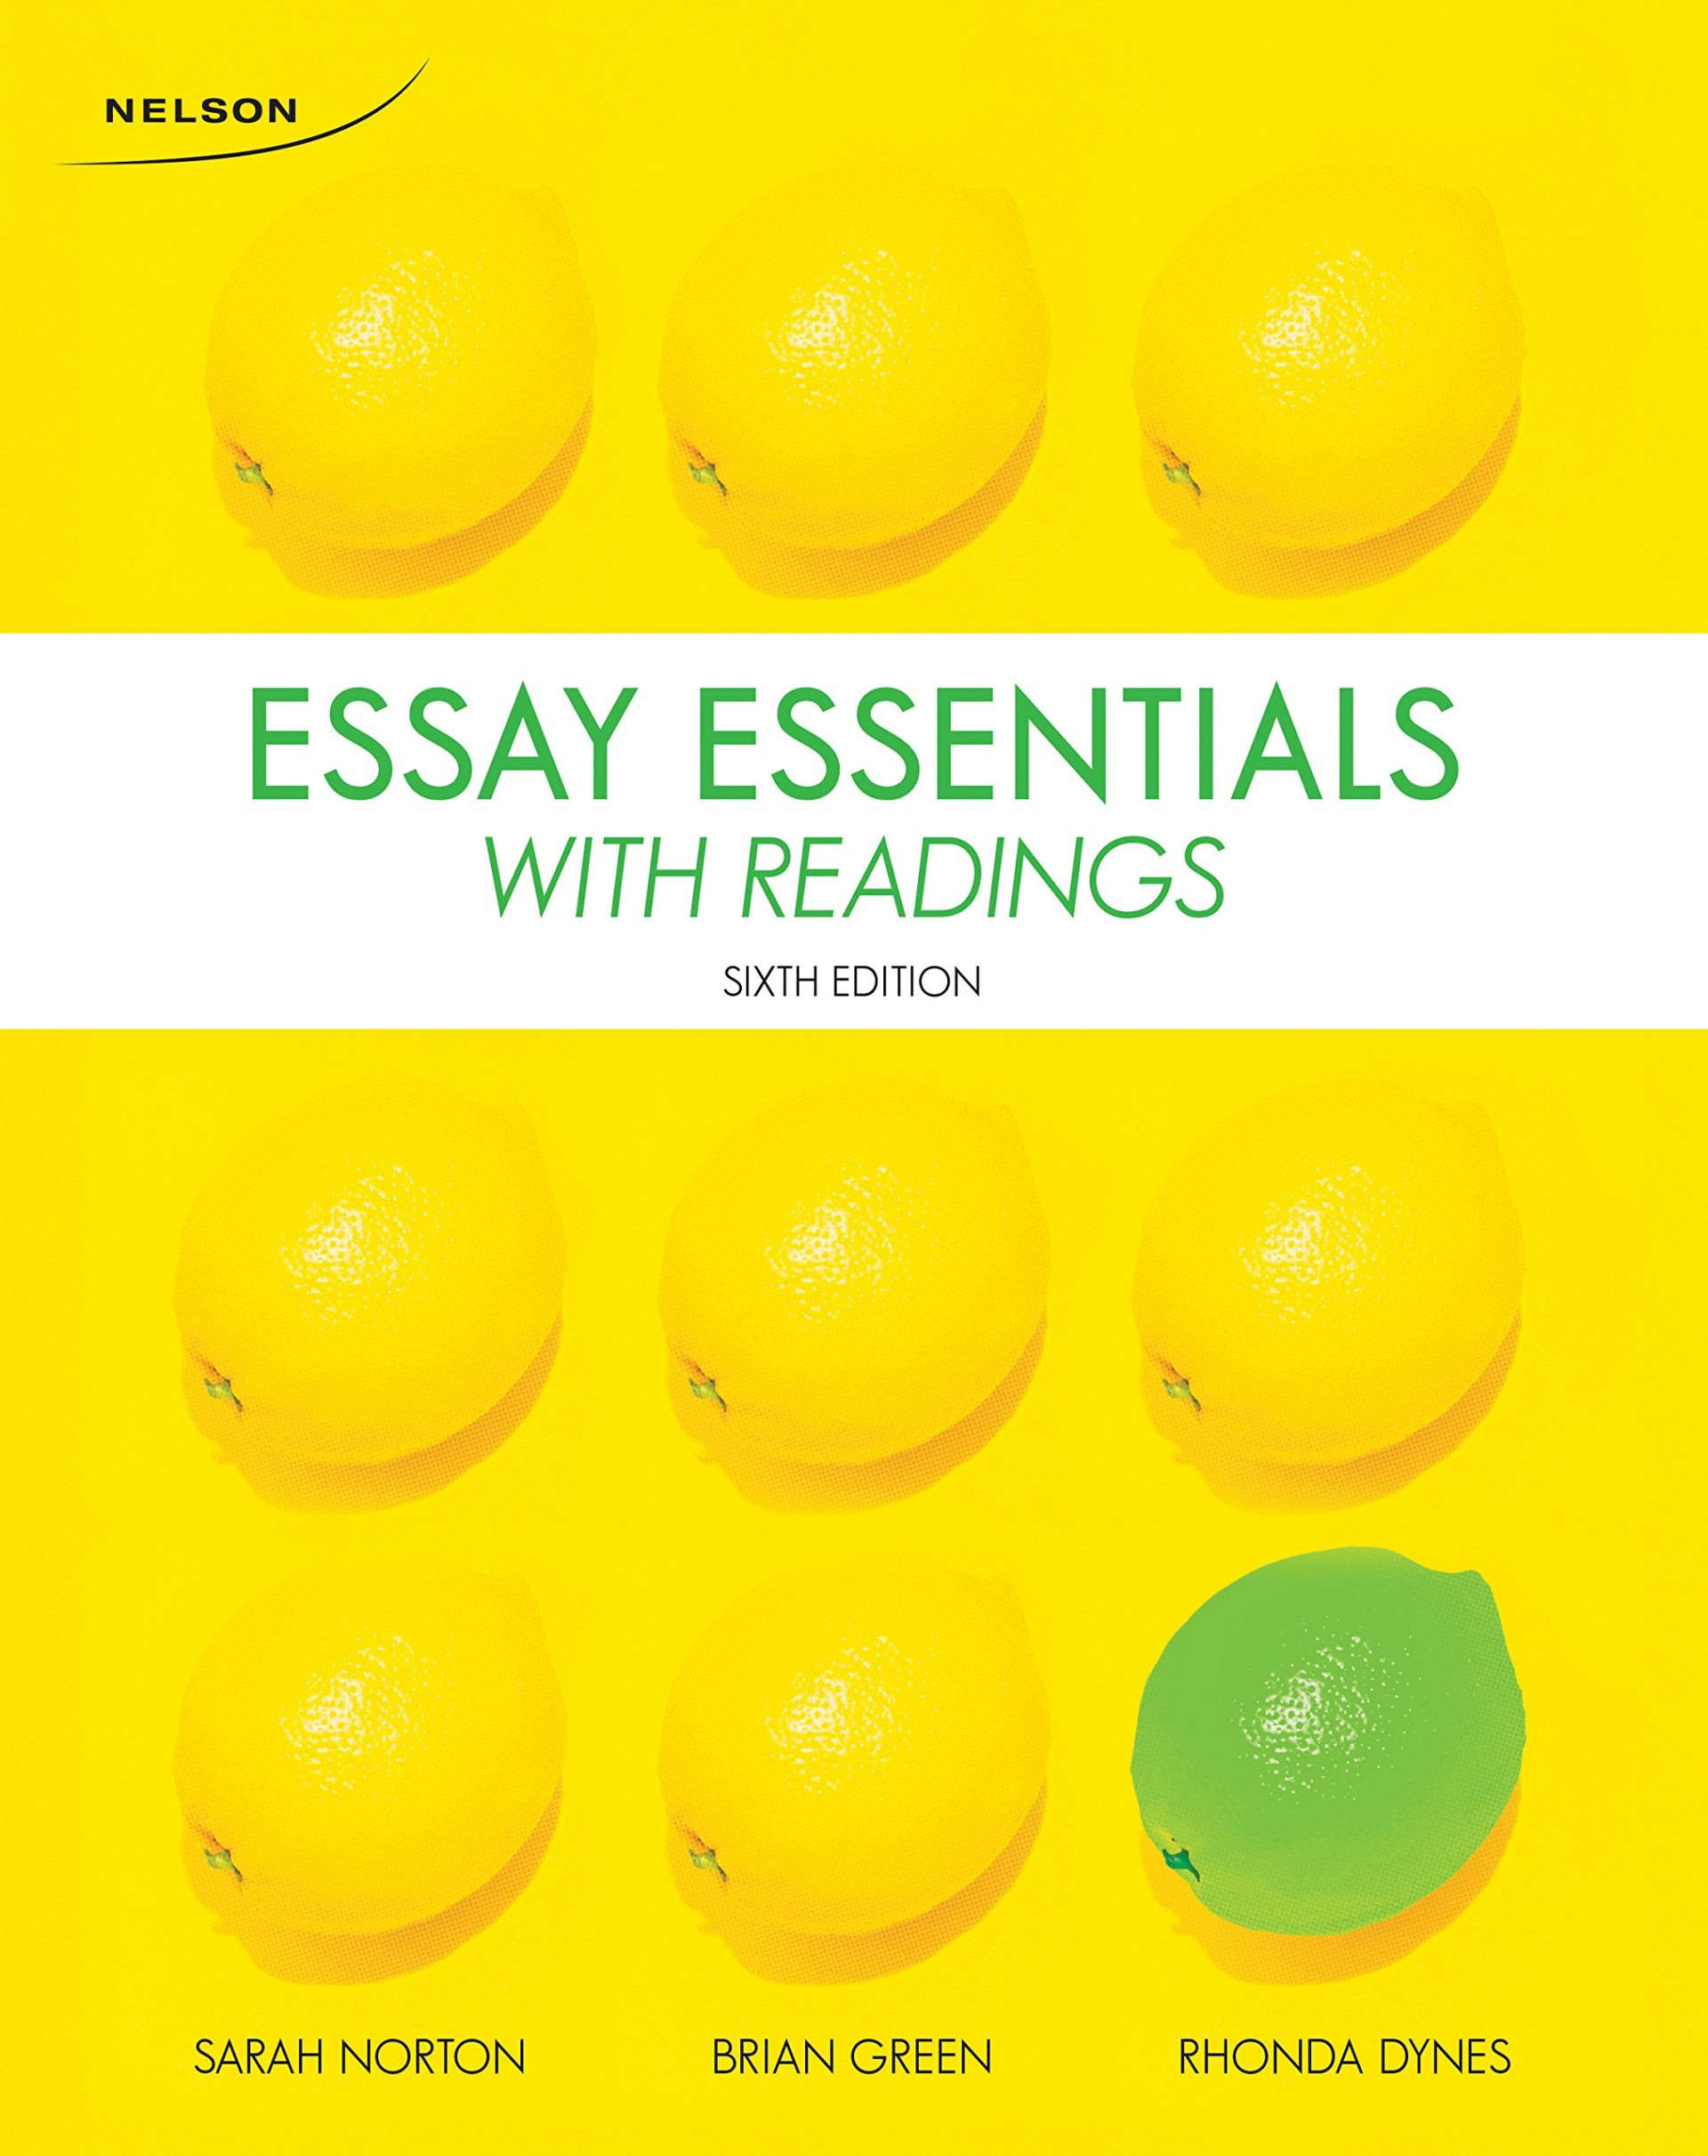 006 Essay Example Real Essays With Readings 5th Edition Wonderful Answer Key Online Ebook 1920